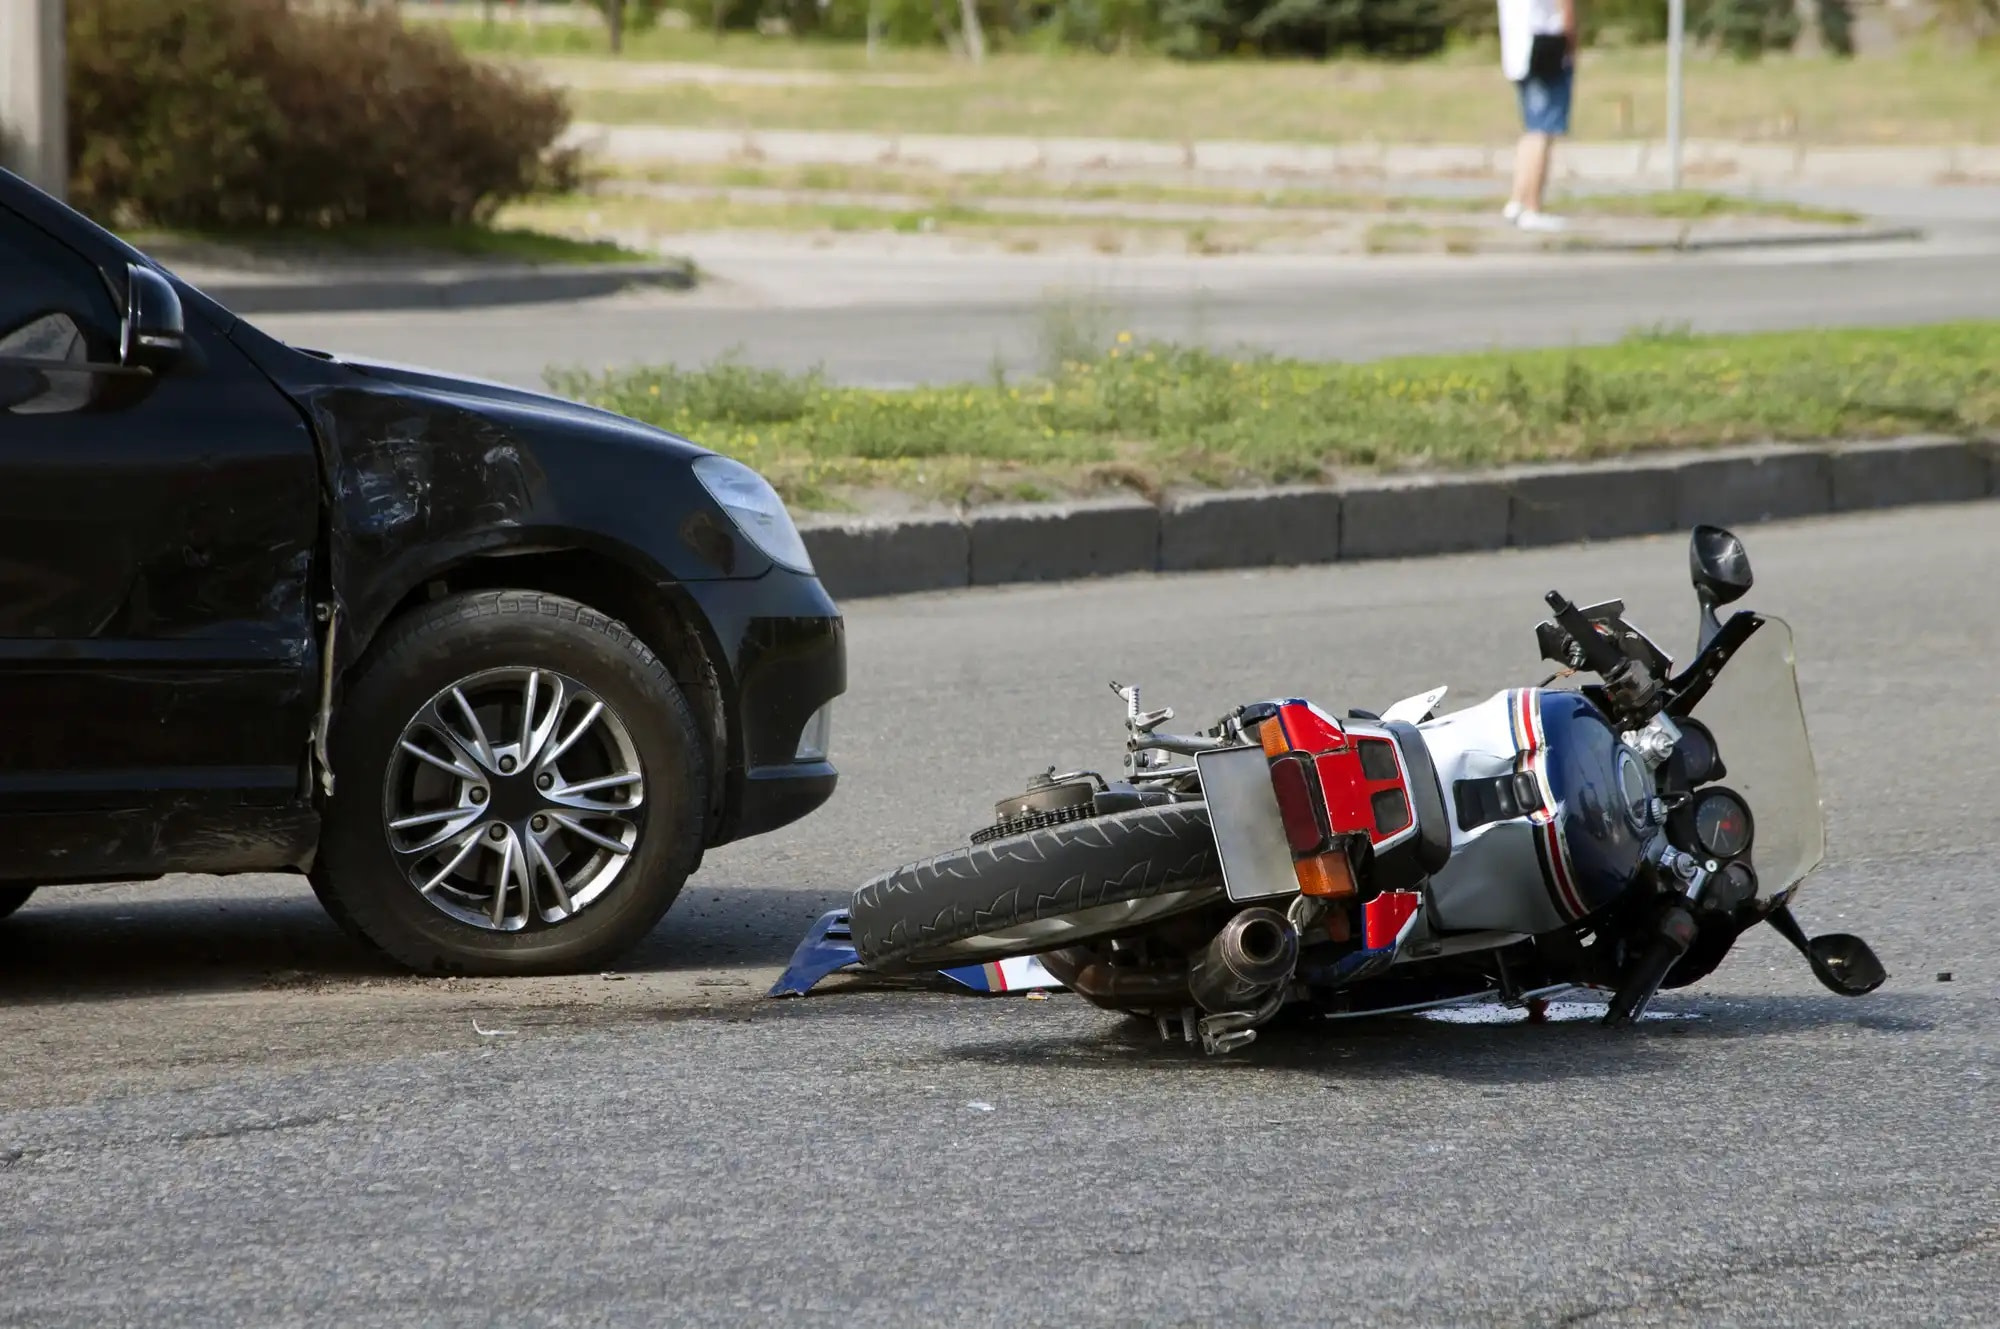 Motorcycle Accidents Attorney - MANGAL, PLLC